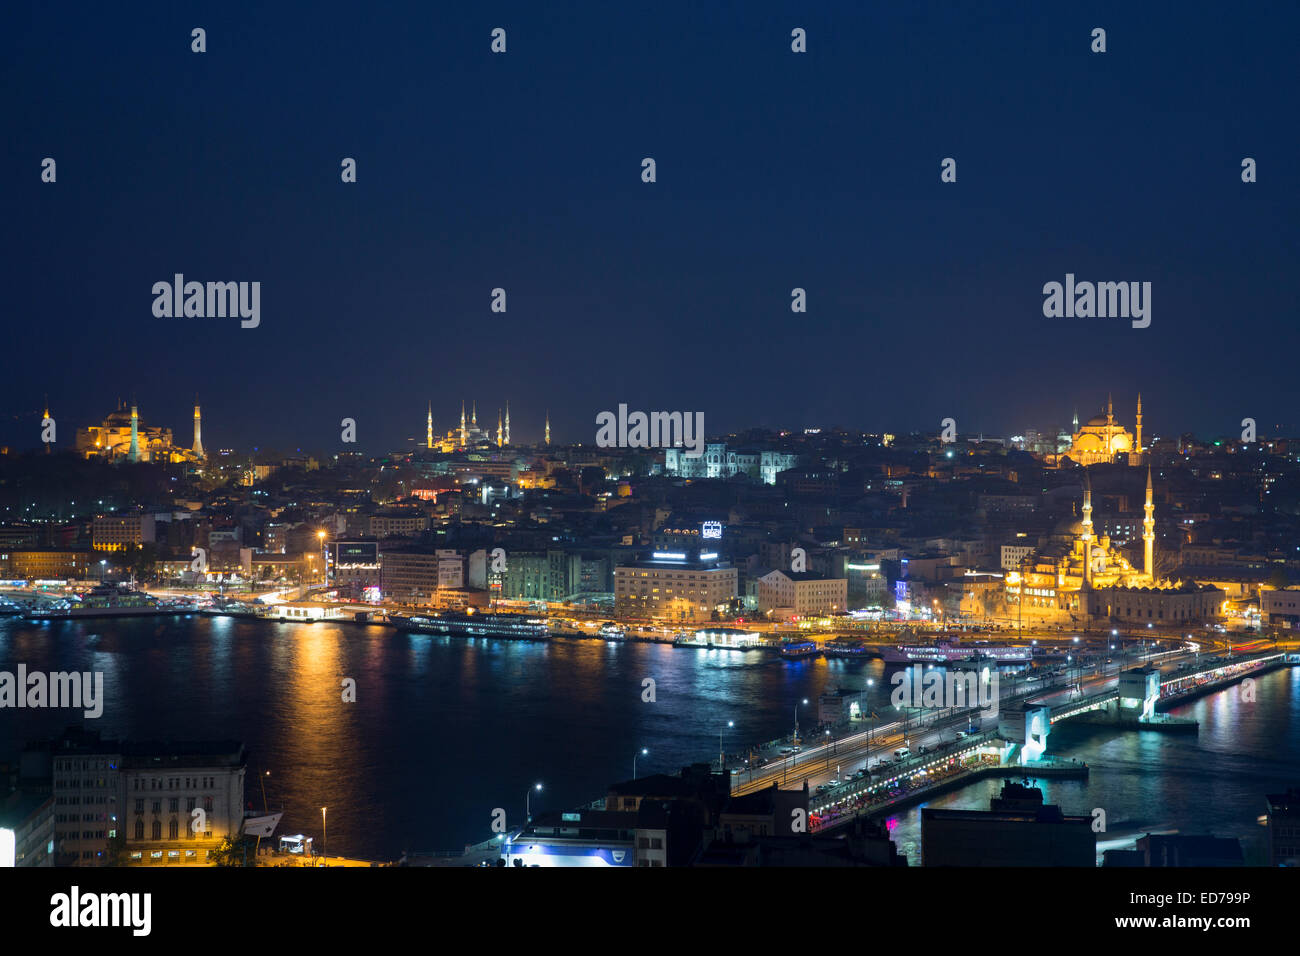 City scene Yeni Camii great mosque by Golden Horn of Bosphorus River, Topkapi Palace, Hagia Sophia Istanbul, Republic - Stock Image